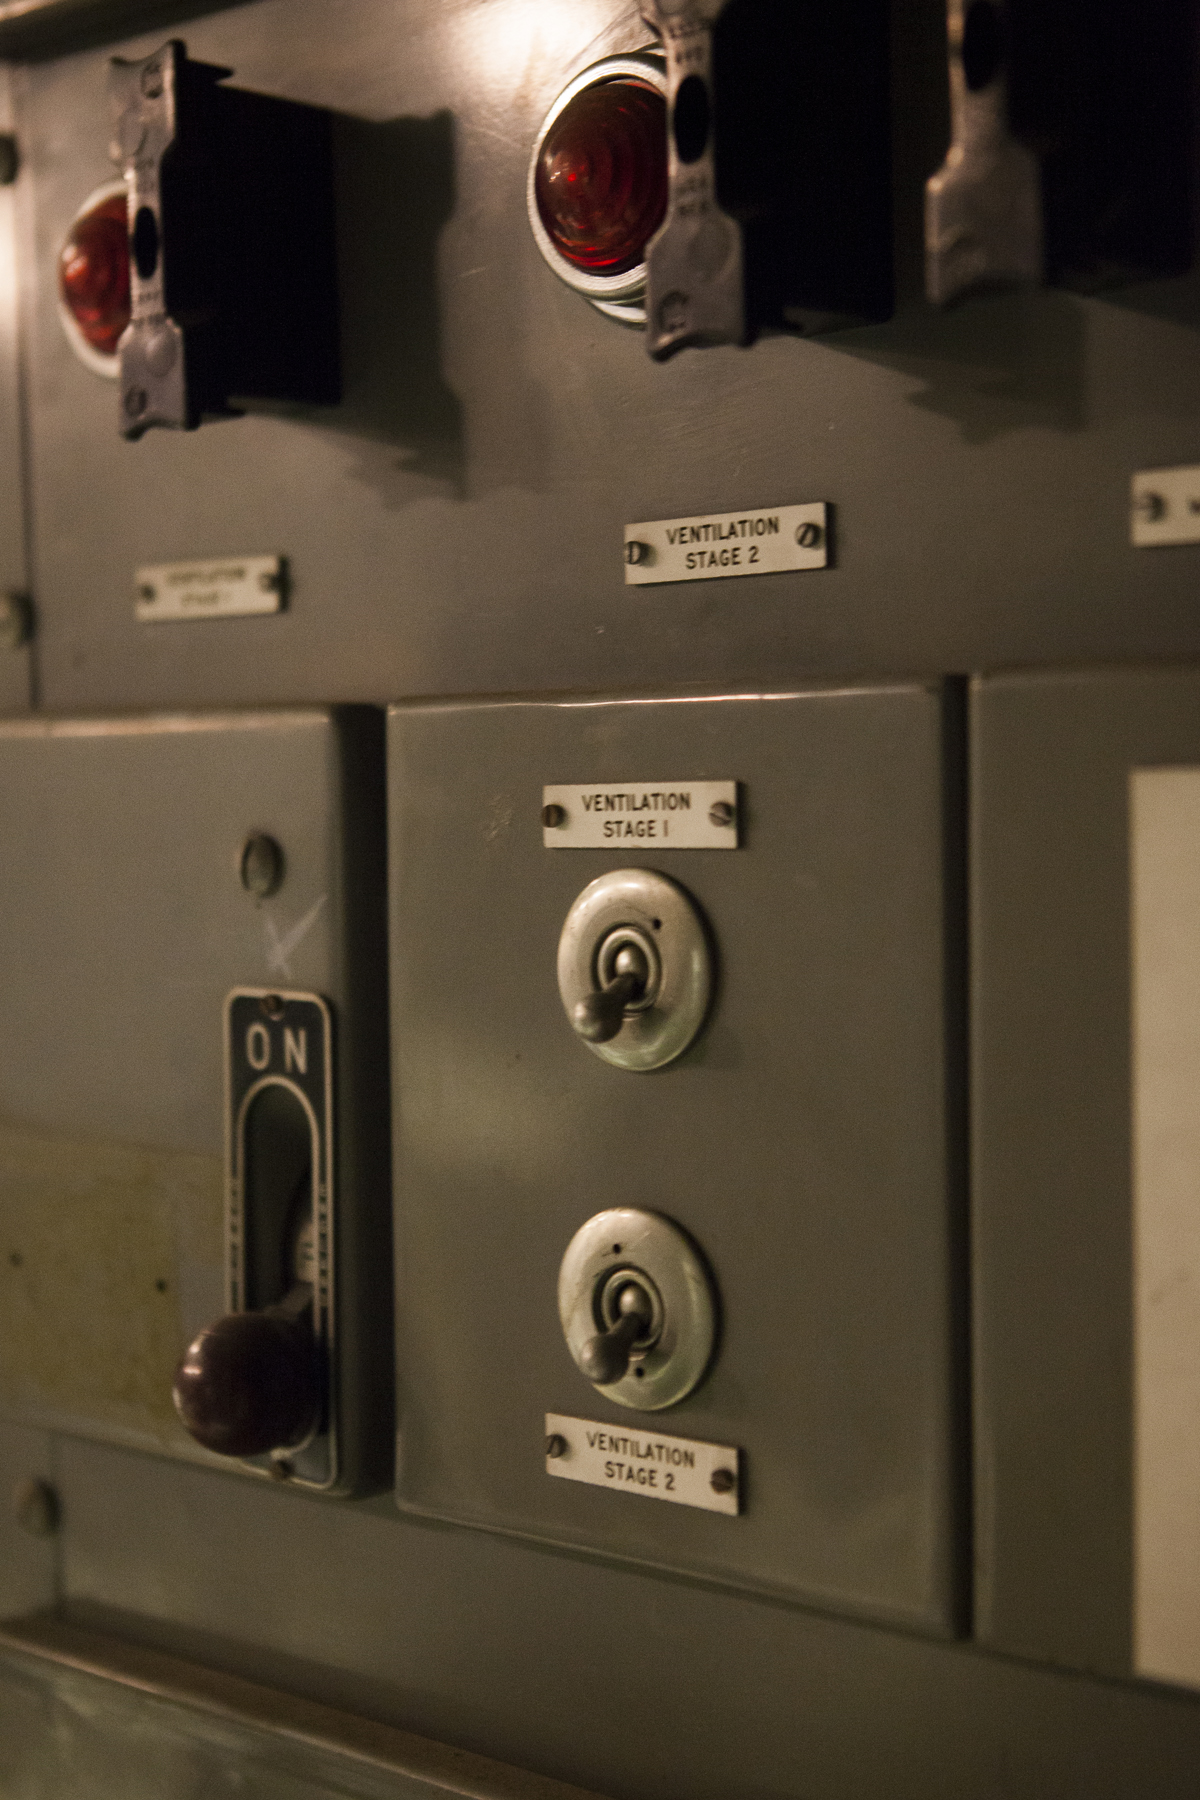 Inside the ventilation room at the Southbank Centre, photo: © Sophia Schorr-Kon, courtesy National Trust